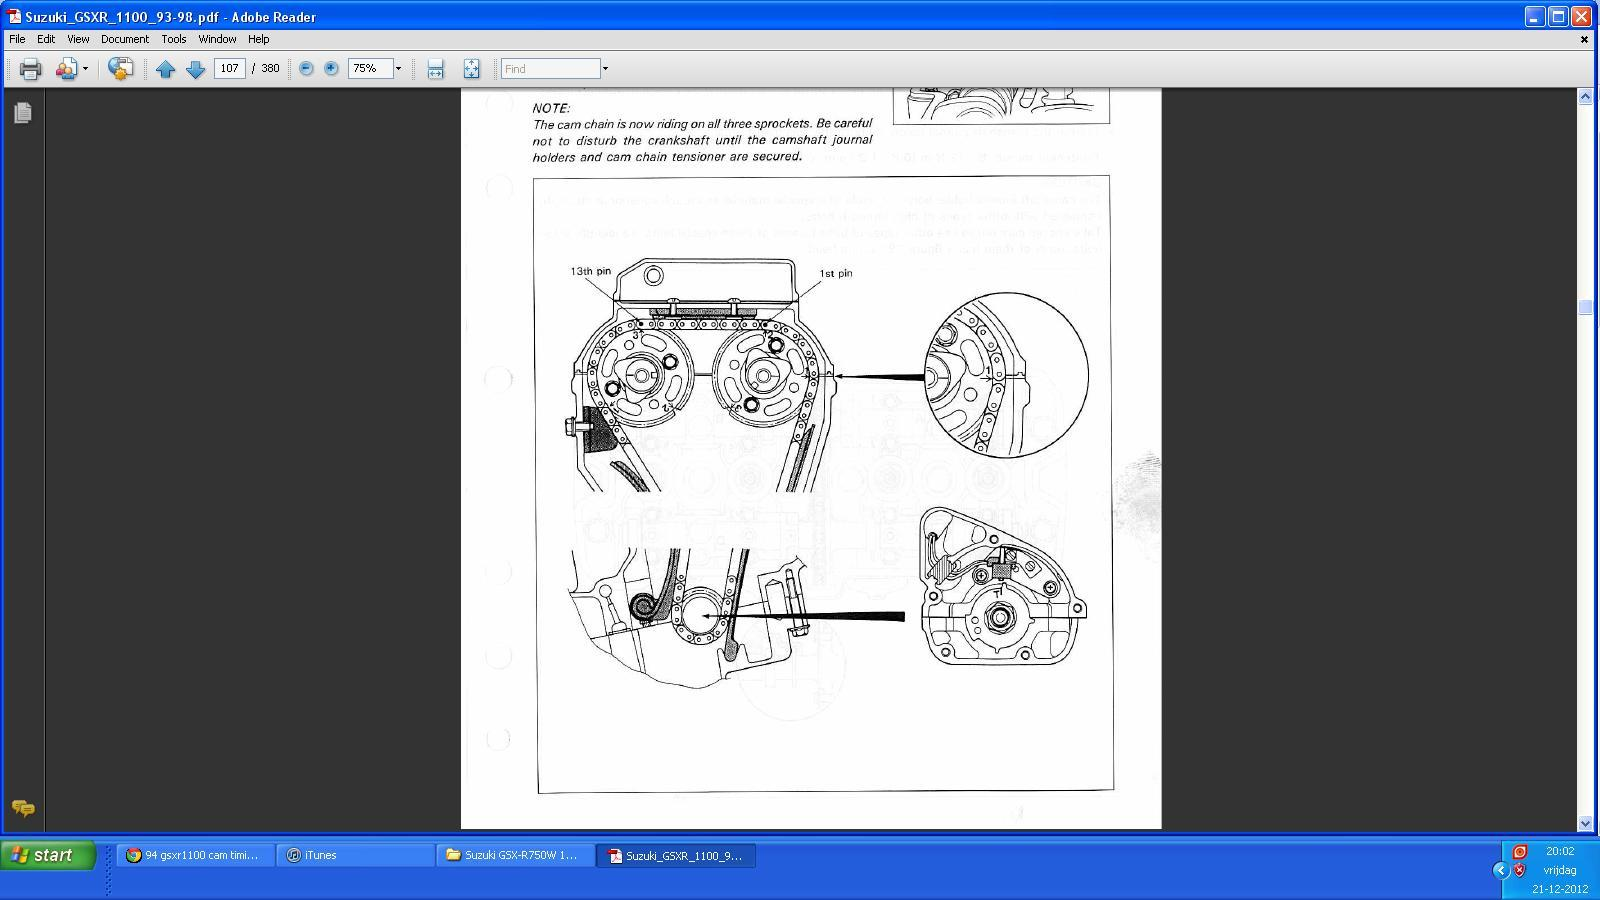 Pa 18 150 owners manual